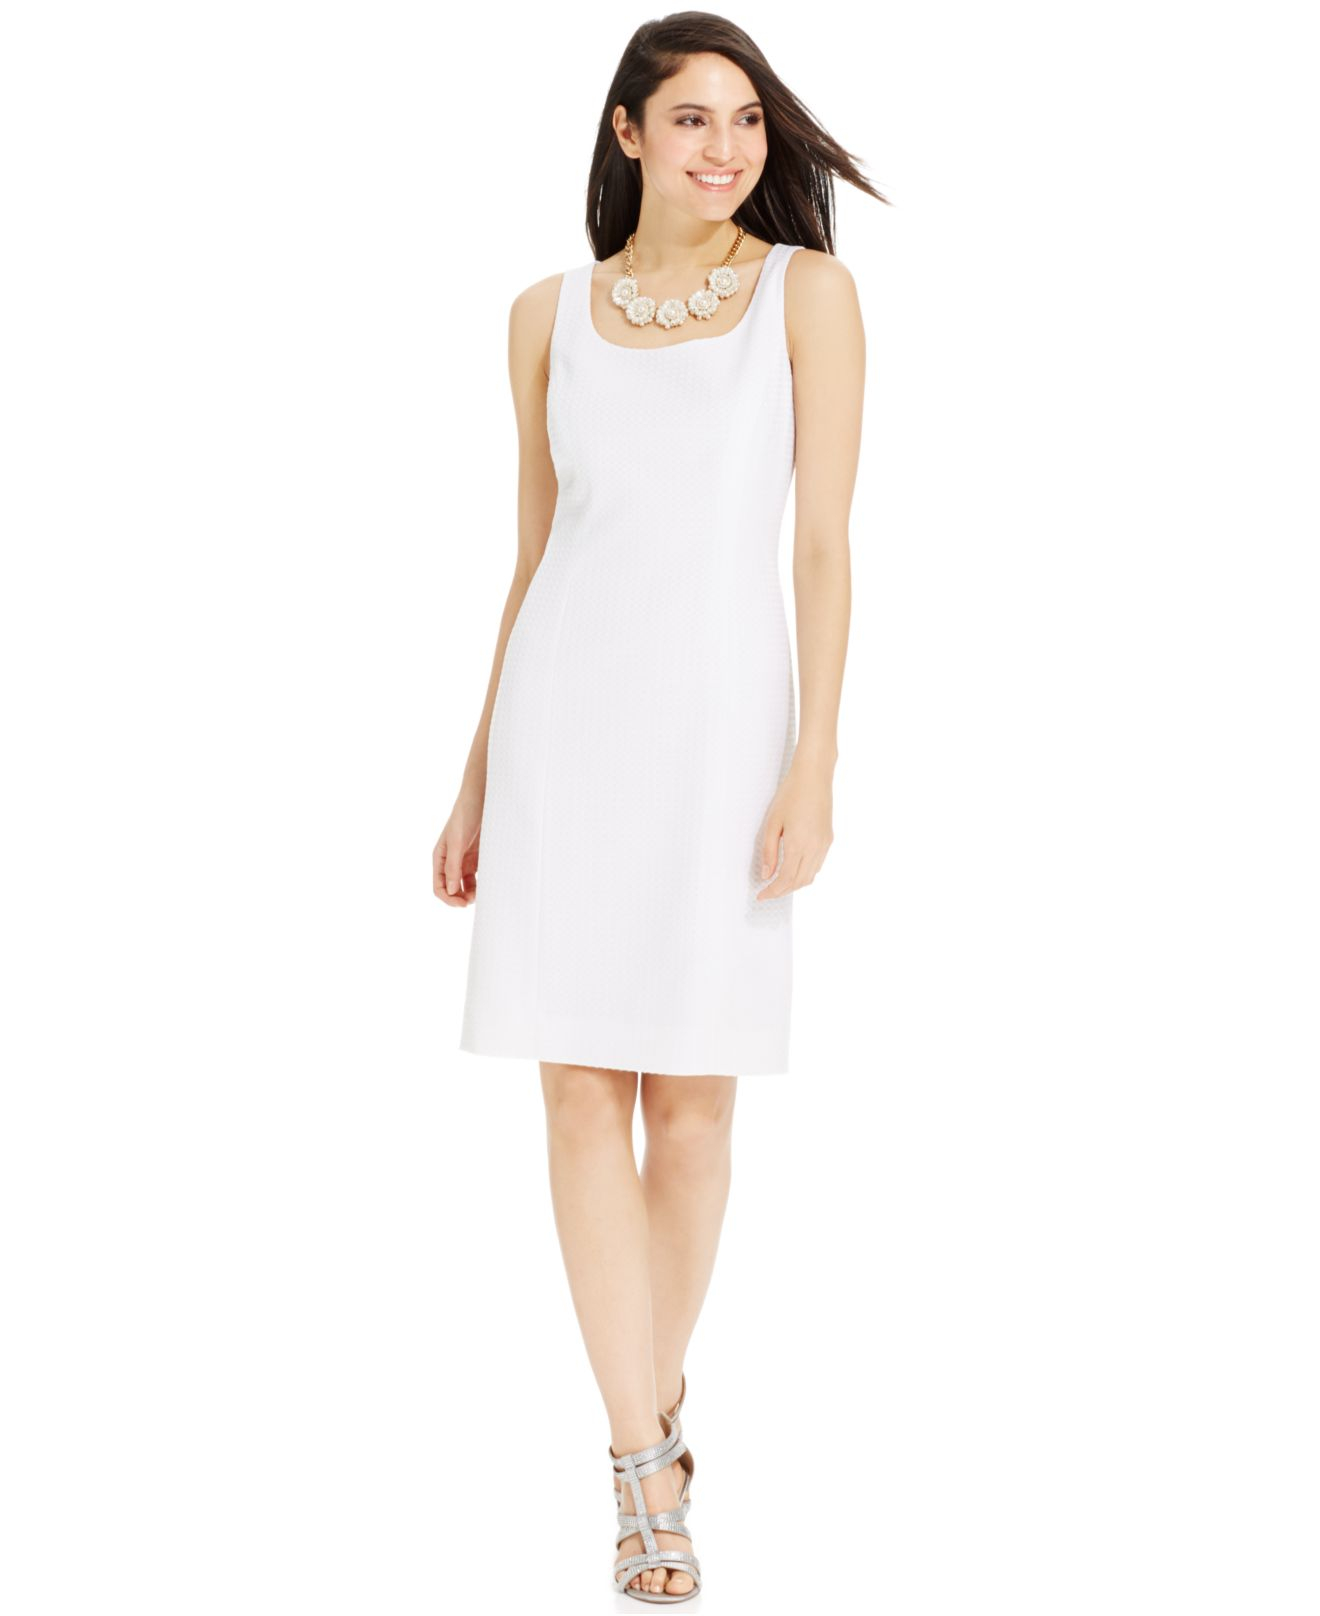 Tahari Textured Sleeveless Dress Suit in White | Lyst